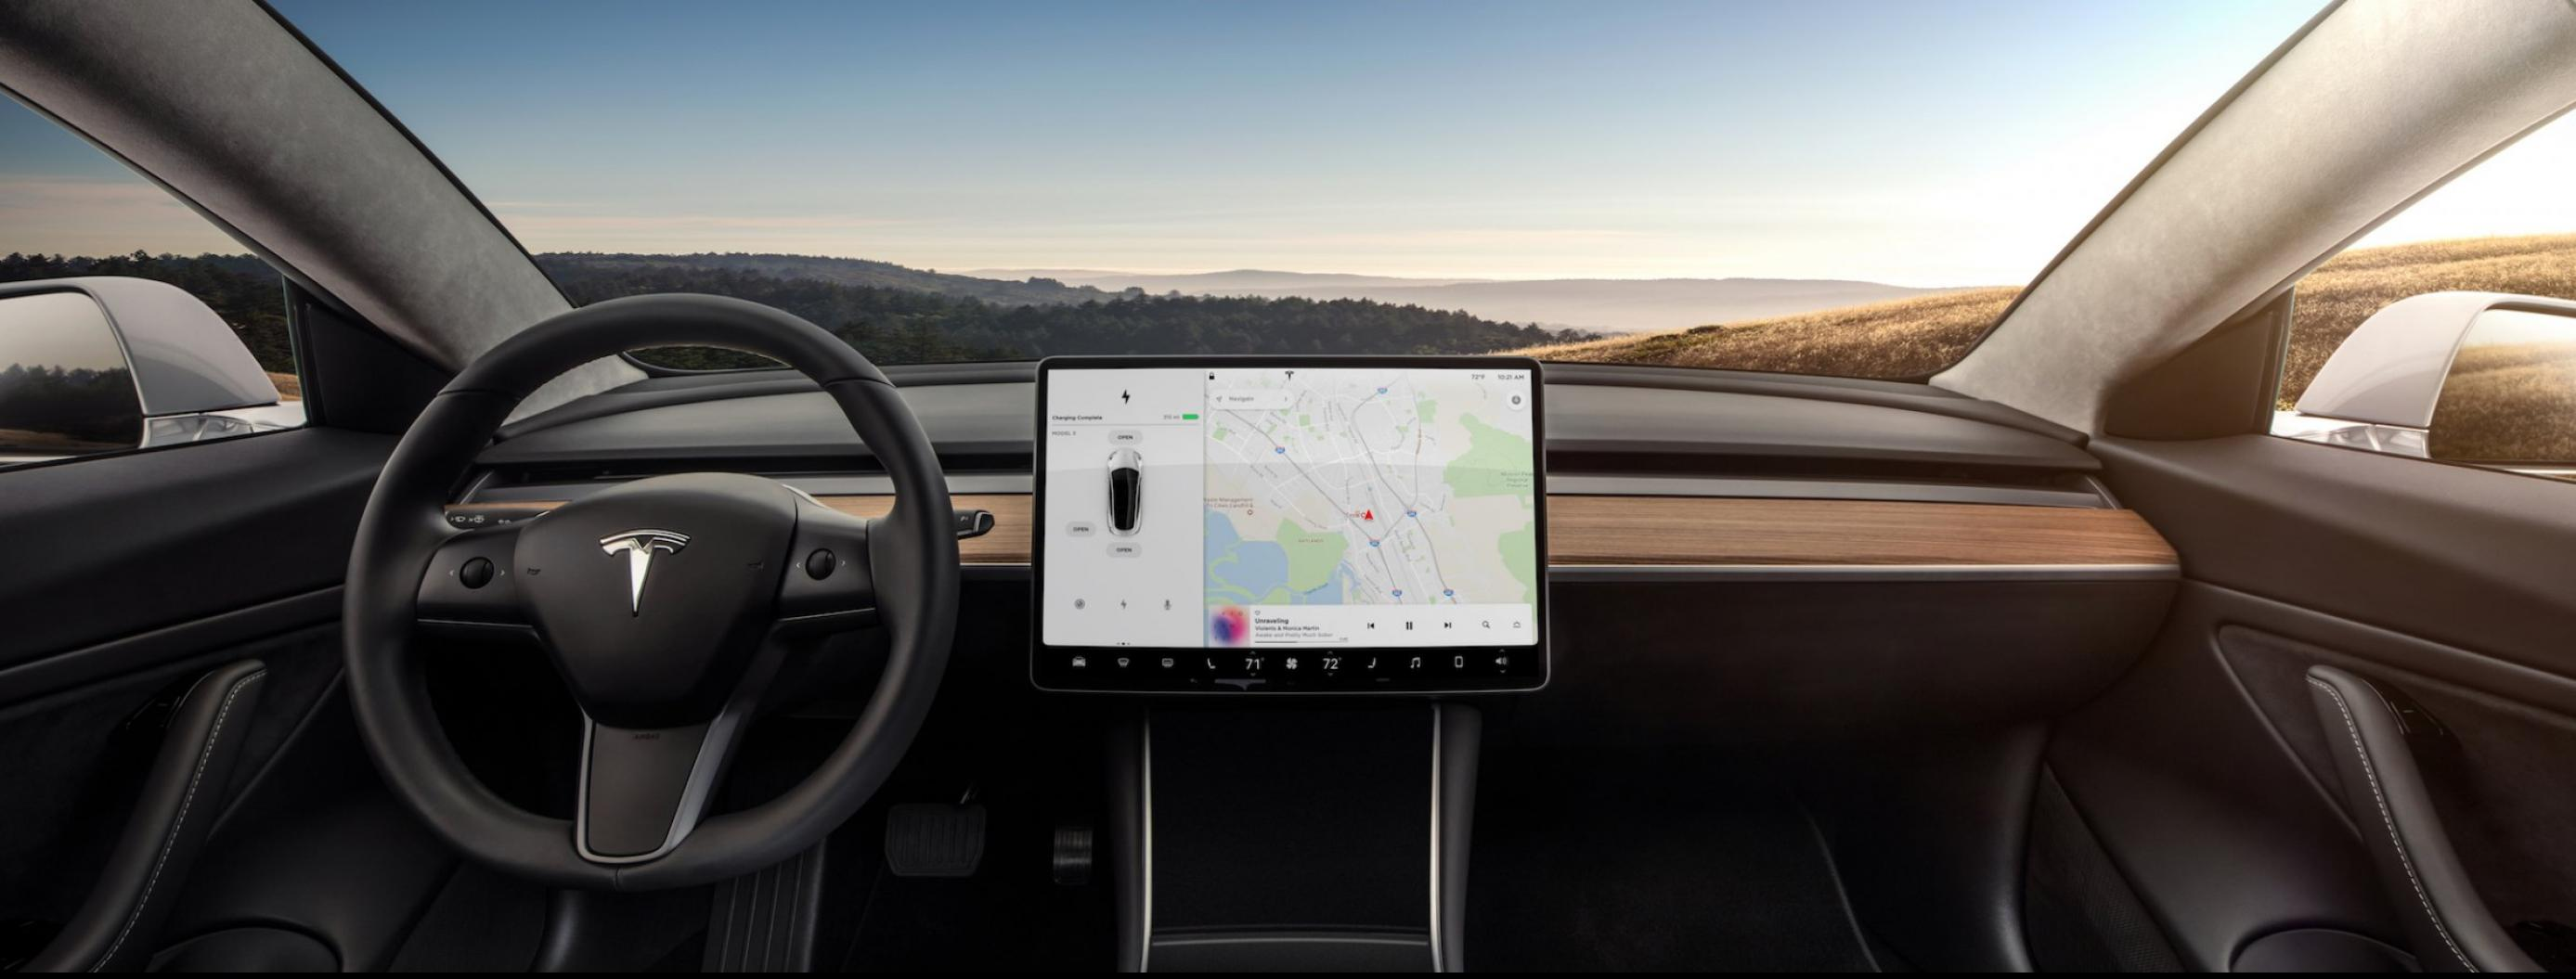 Tesla Model 3 Is More Than Just An Electric Car